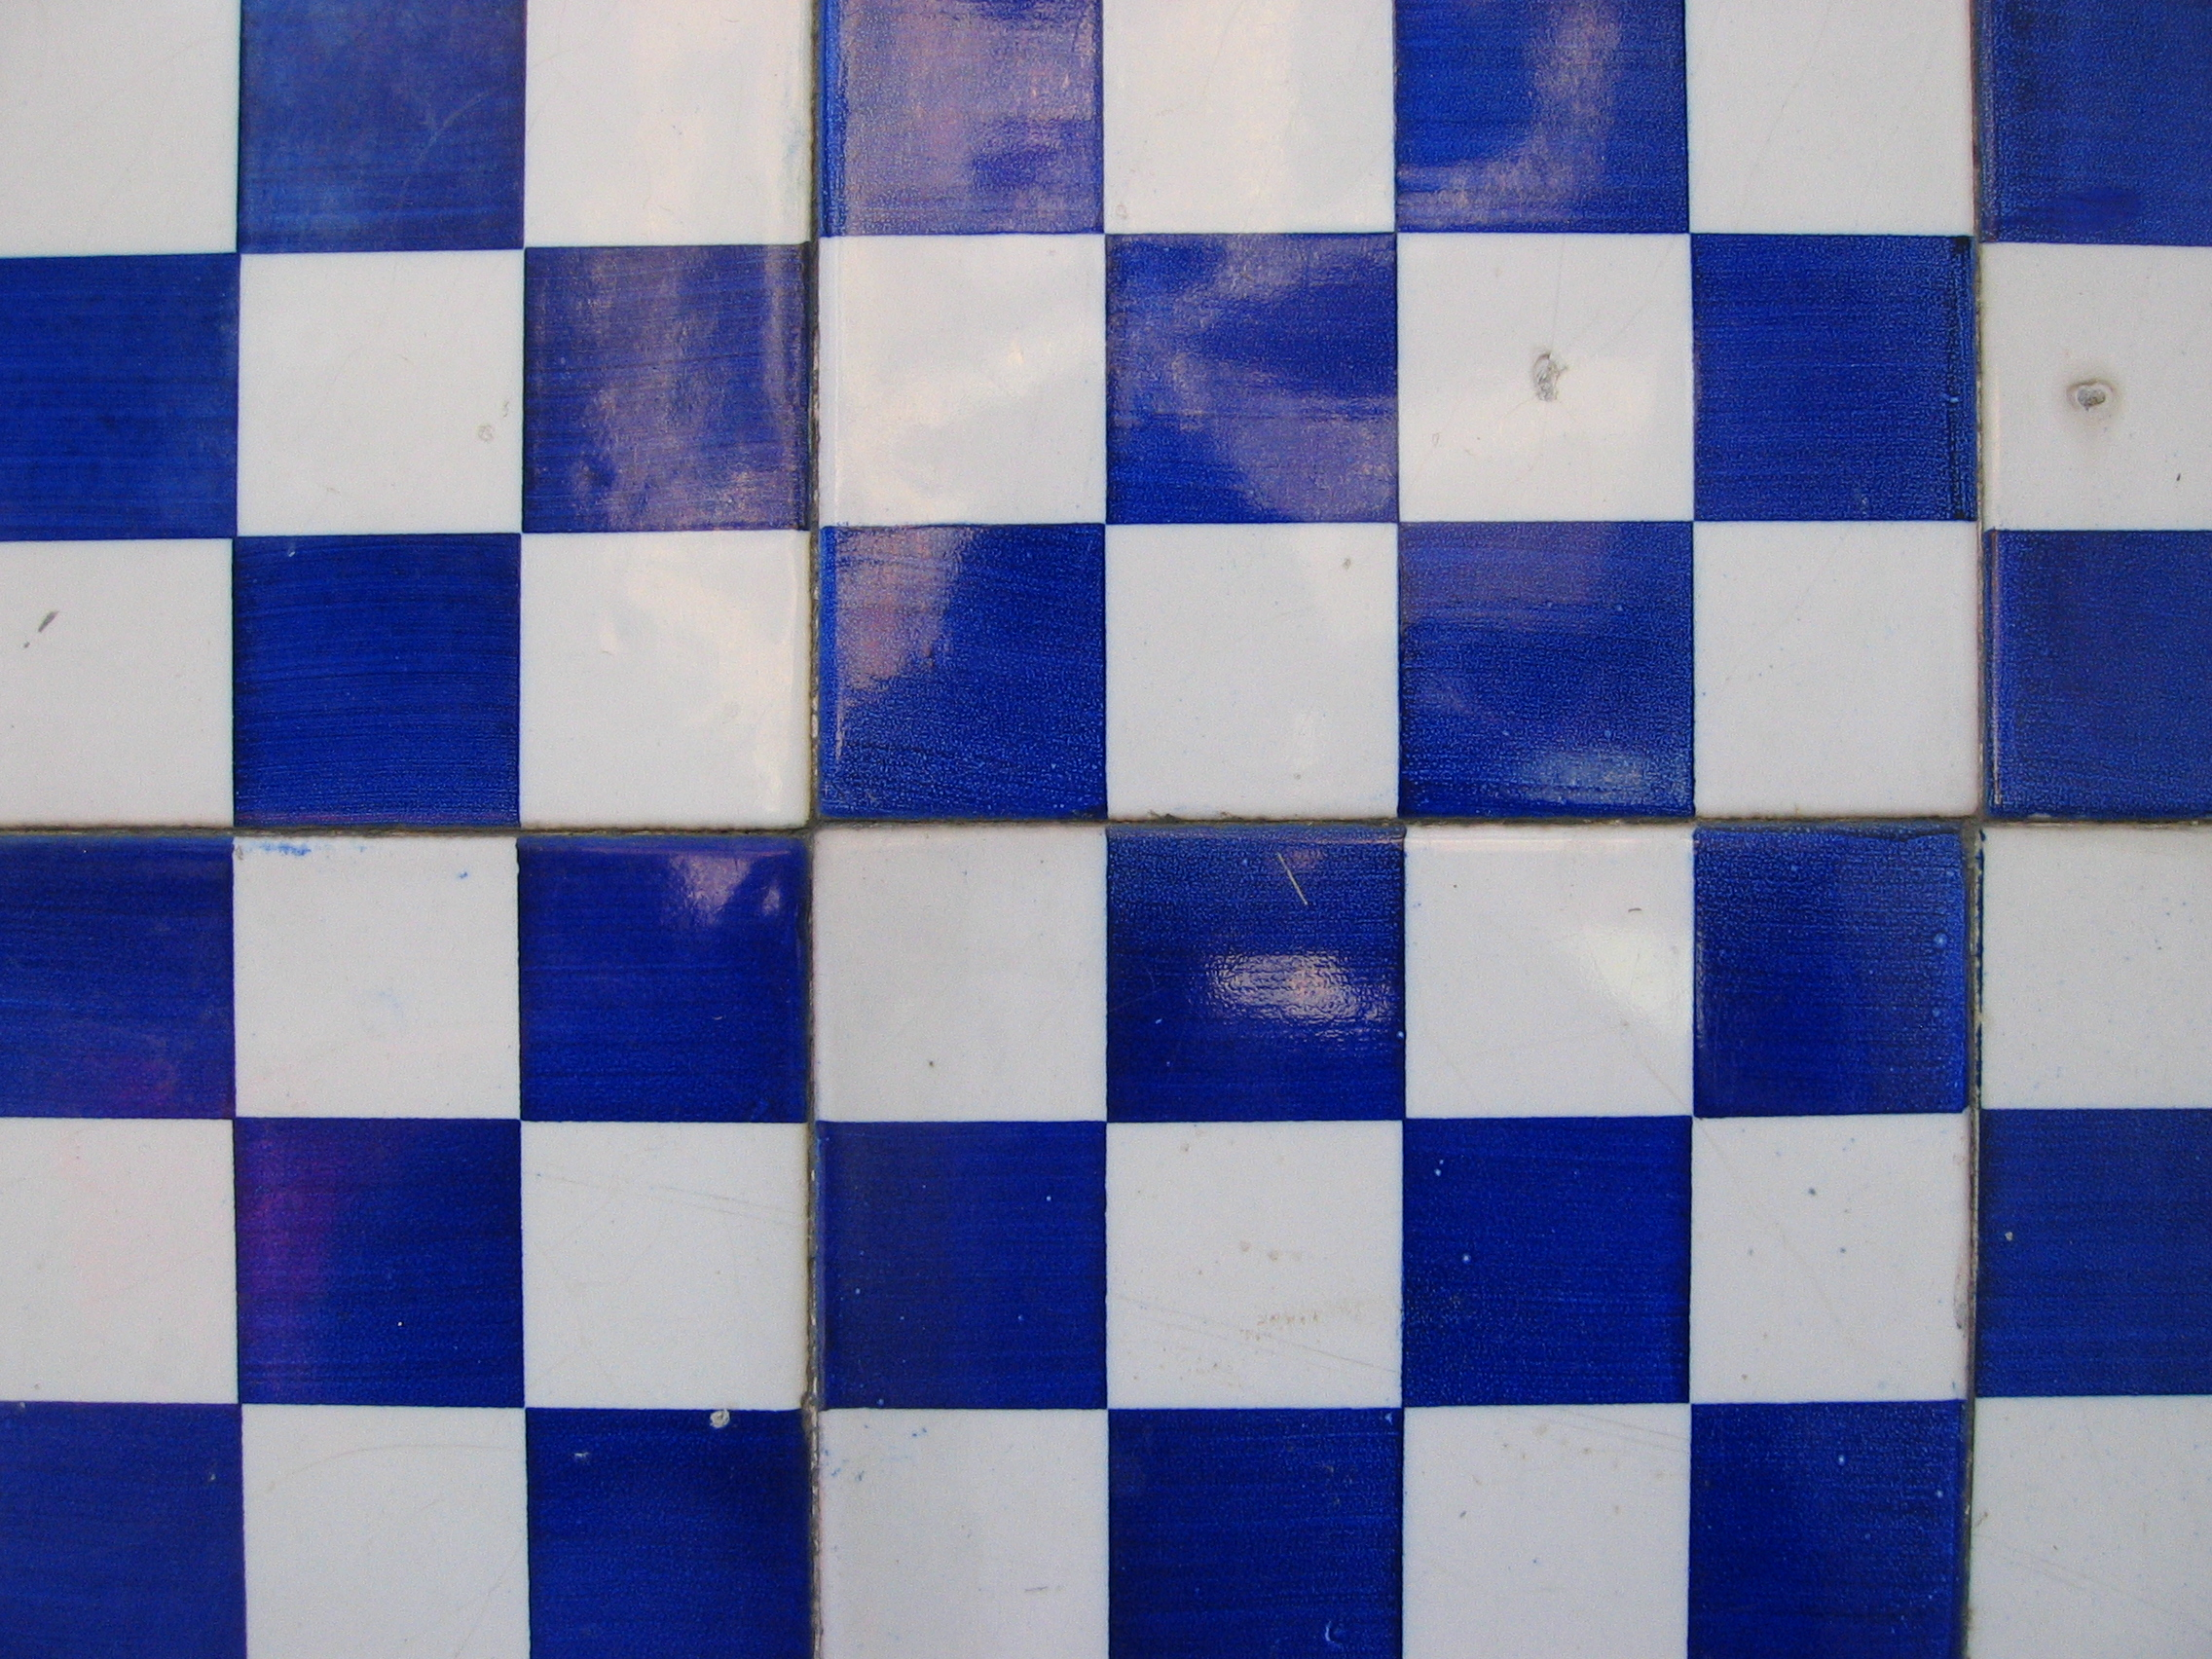 http://upload.wikimedia.org/wikipedia/commons/9/99/Blue_and_white_tiles.jpg